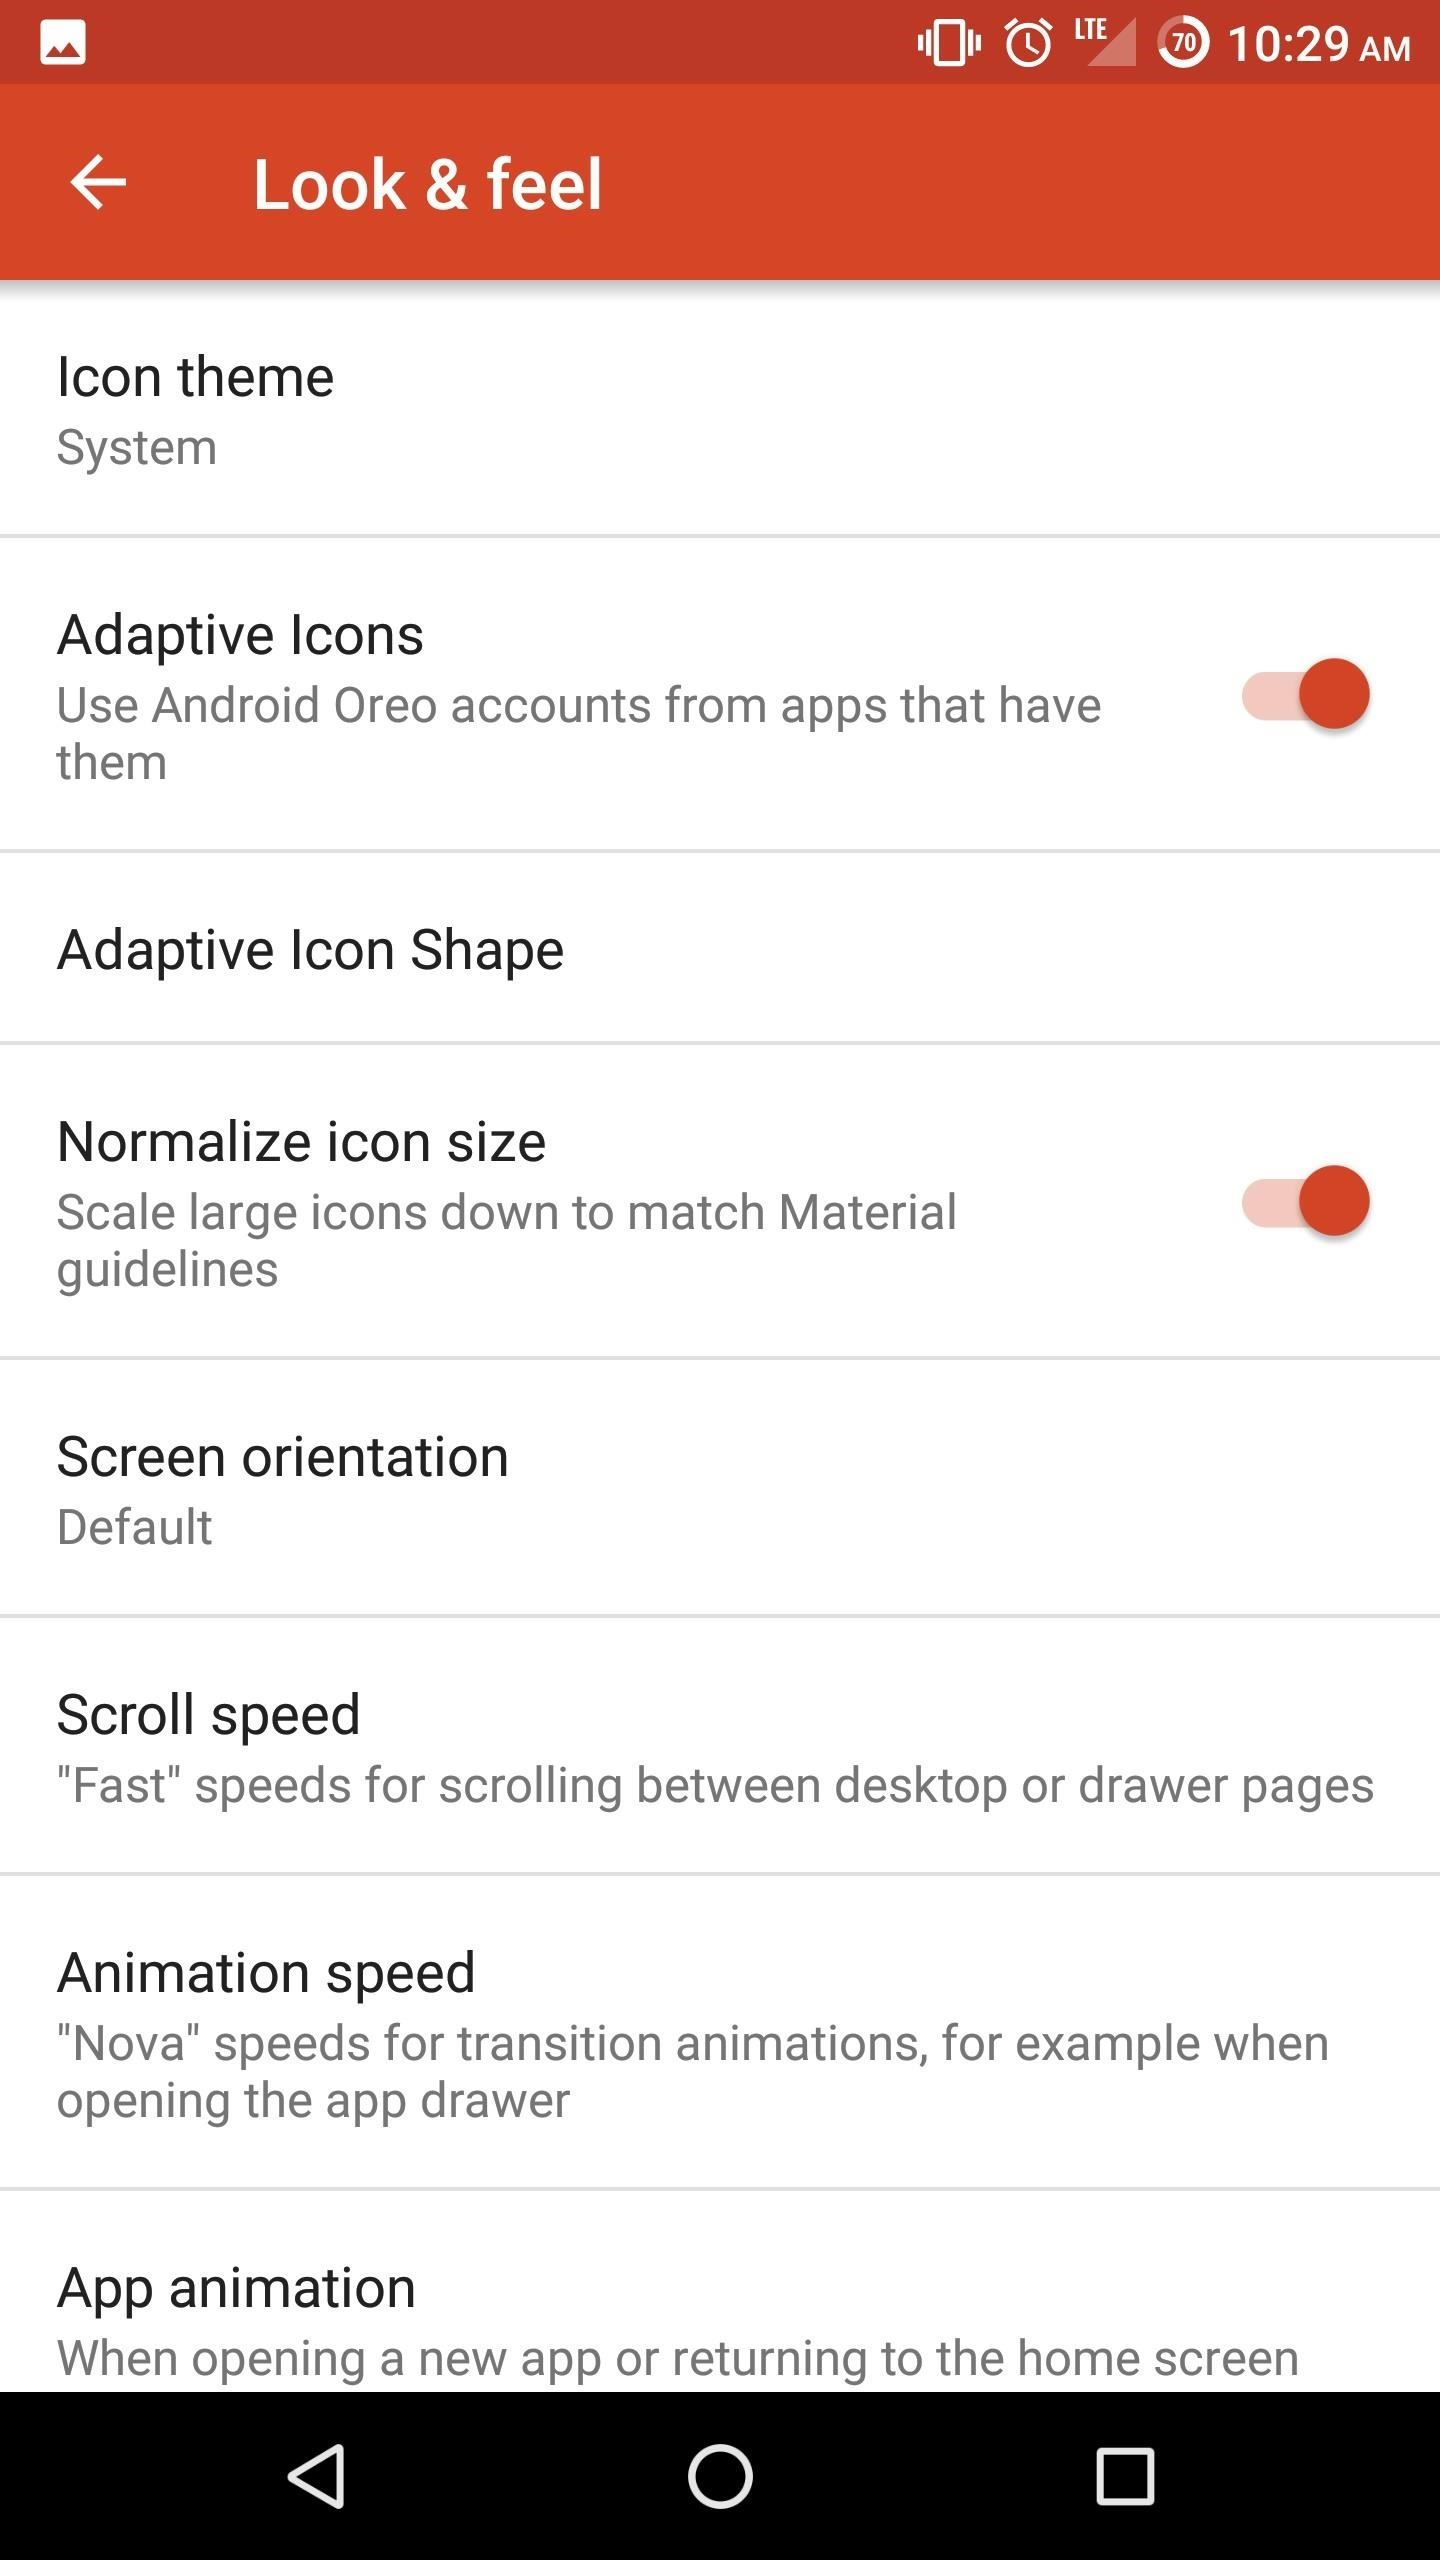 Nova Launcher 101: How to Get Android Oreo's Adaptive Icons on Any Phone